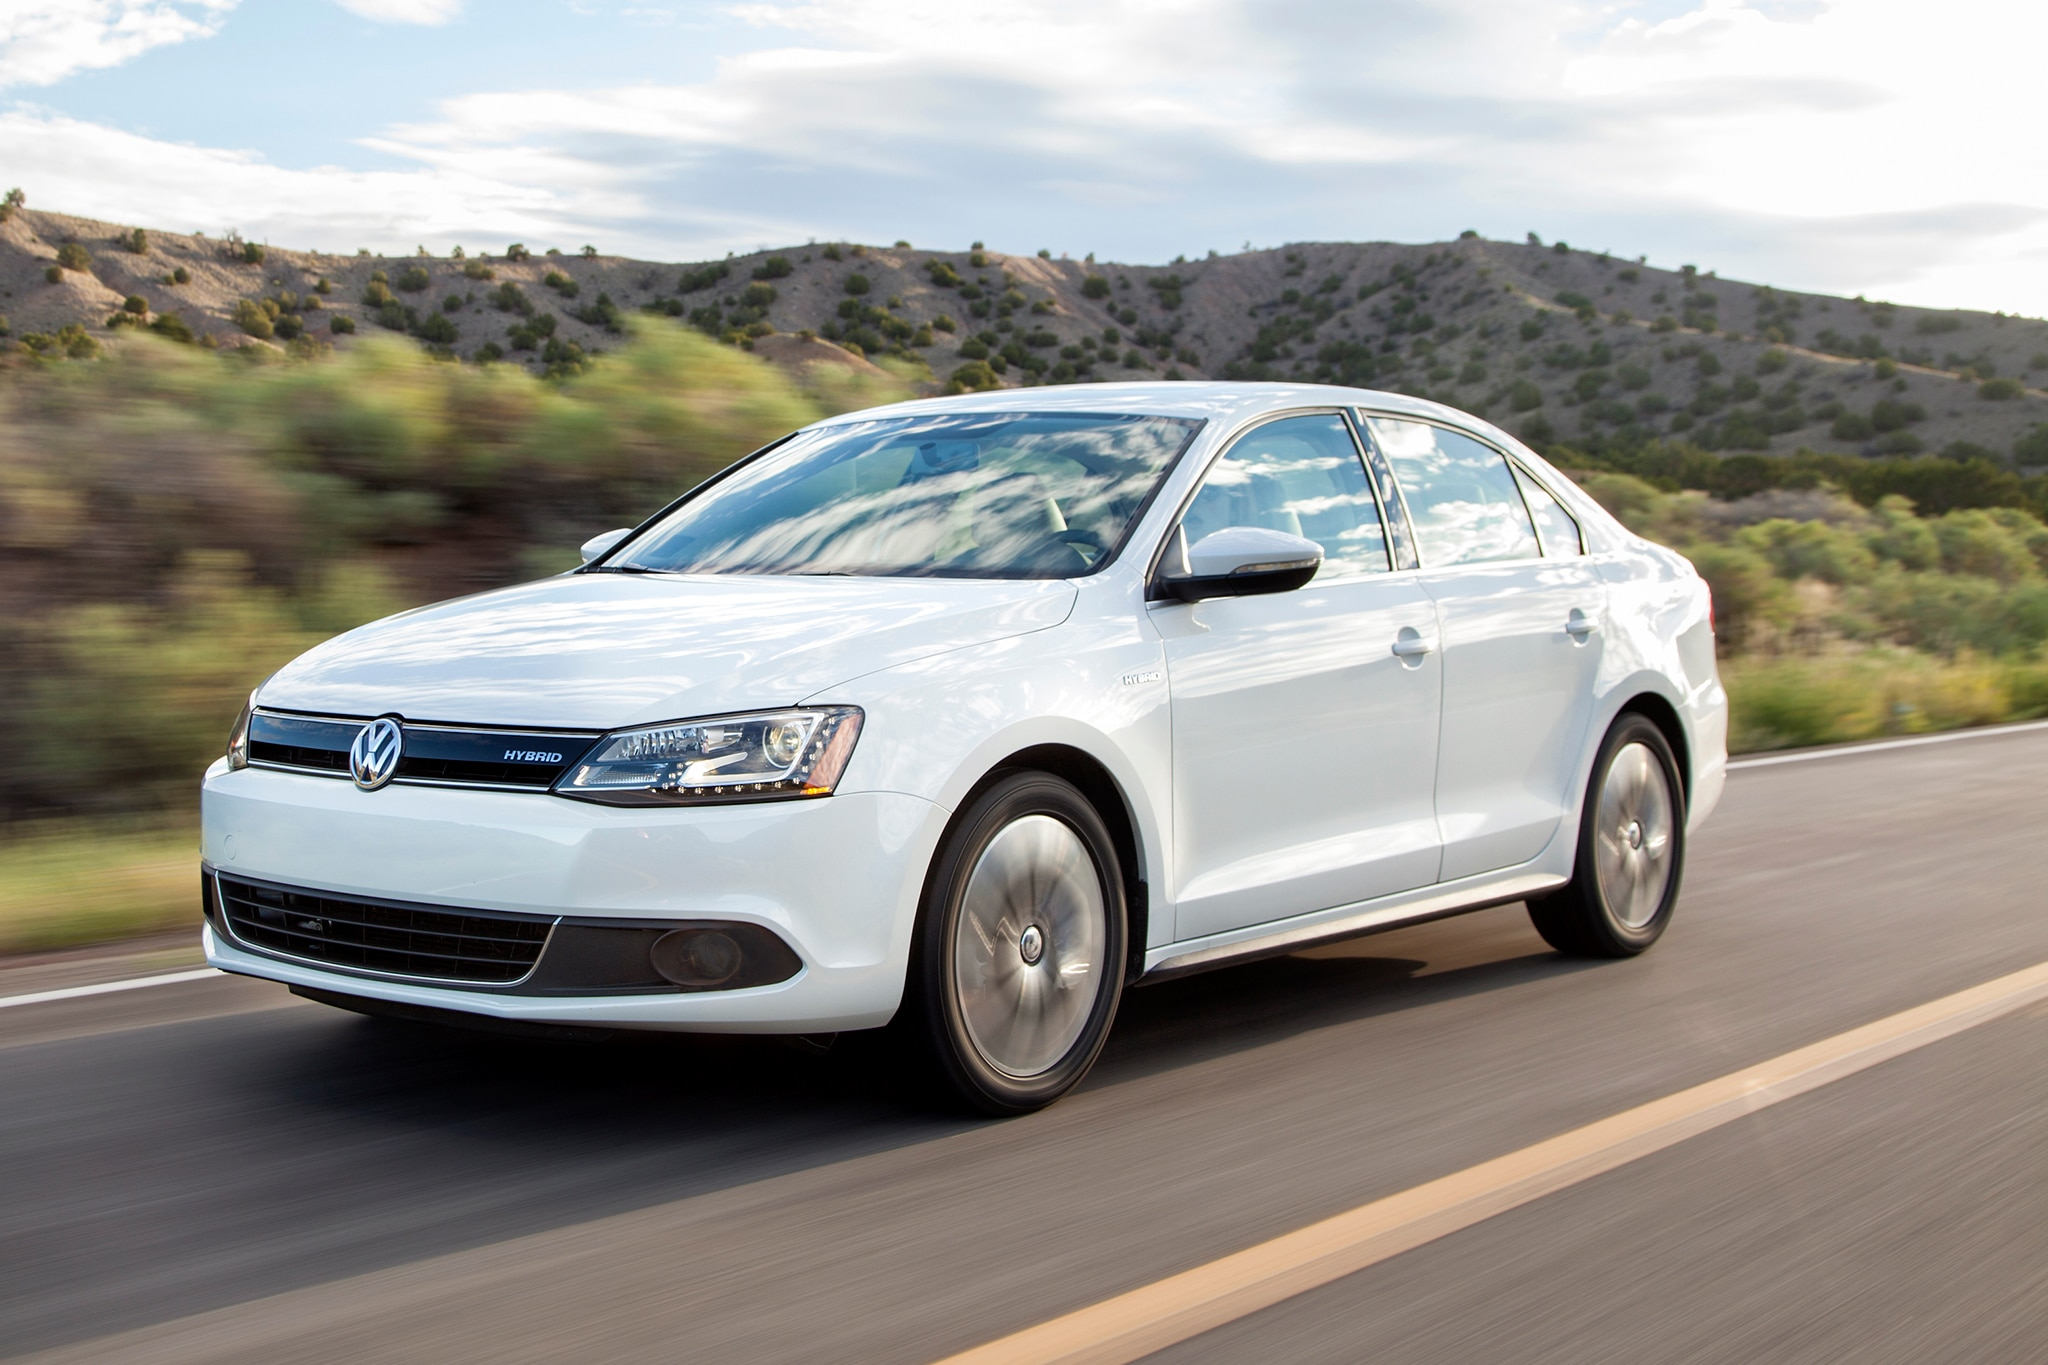 2014 Volkswagen Jetta Gains Independent Rear Suspension, 1 ...